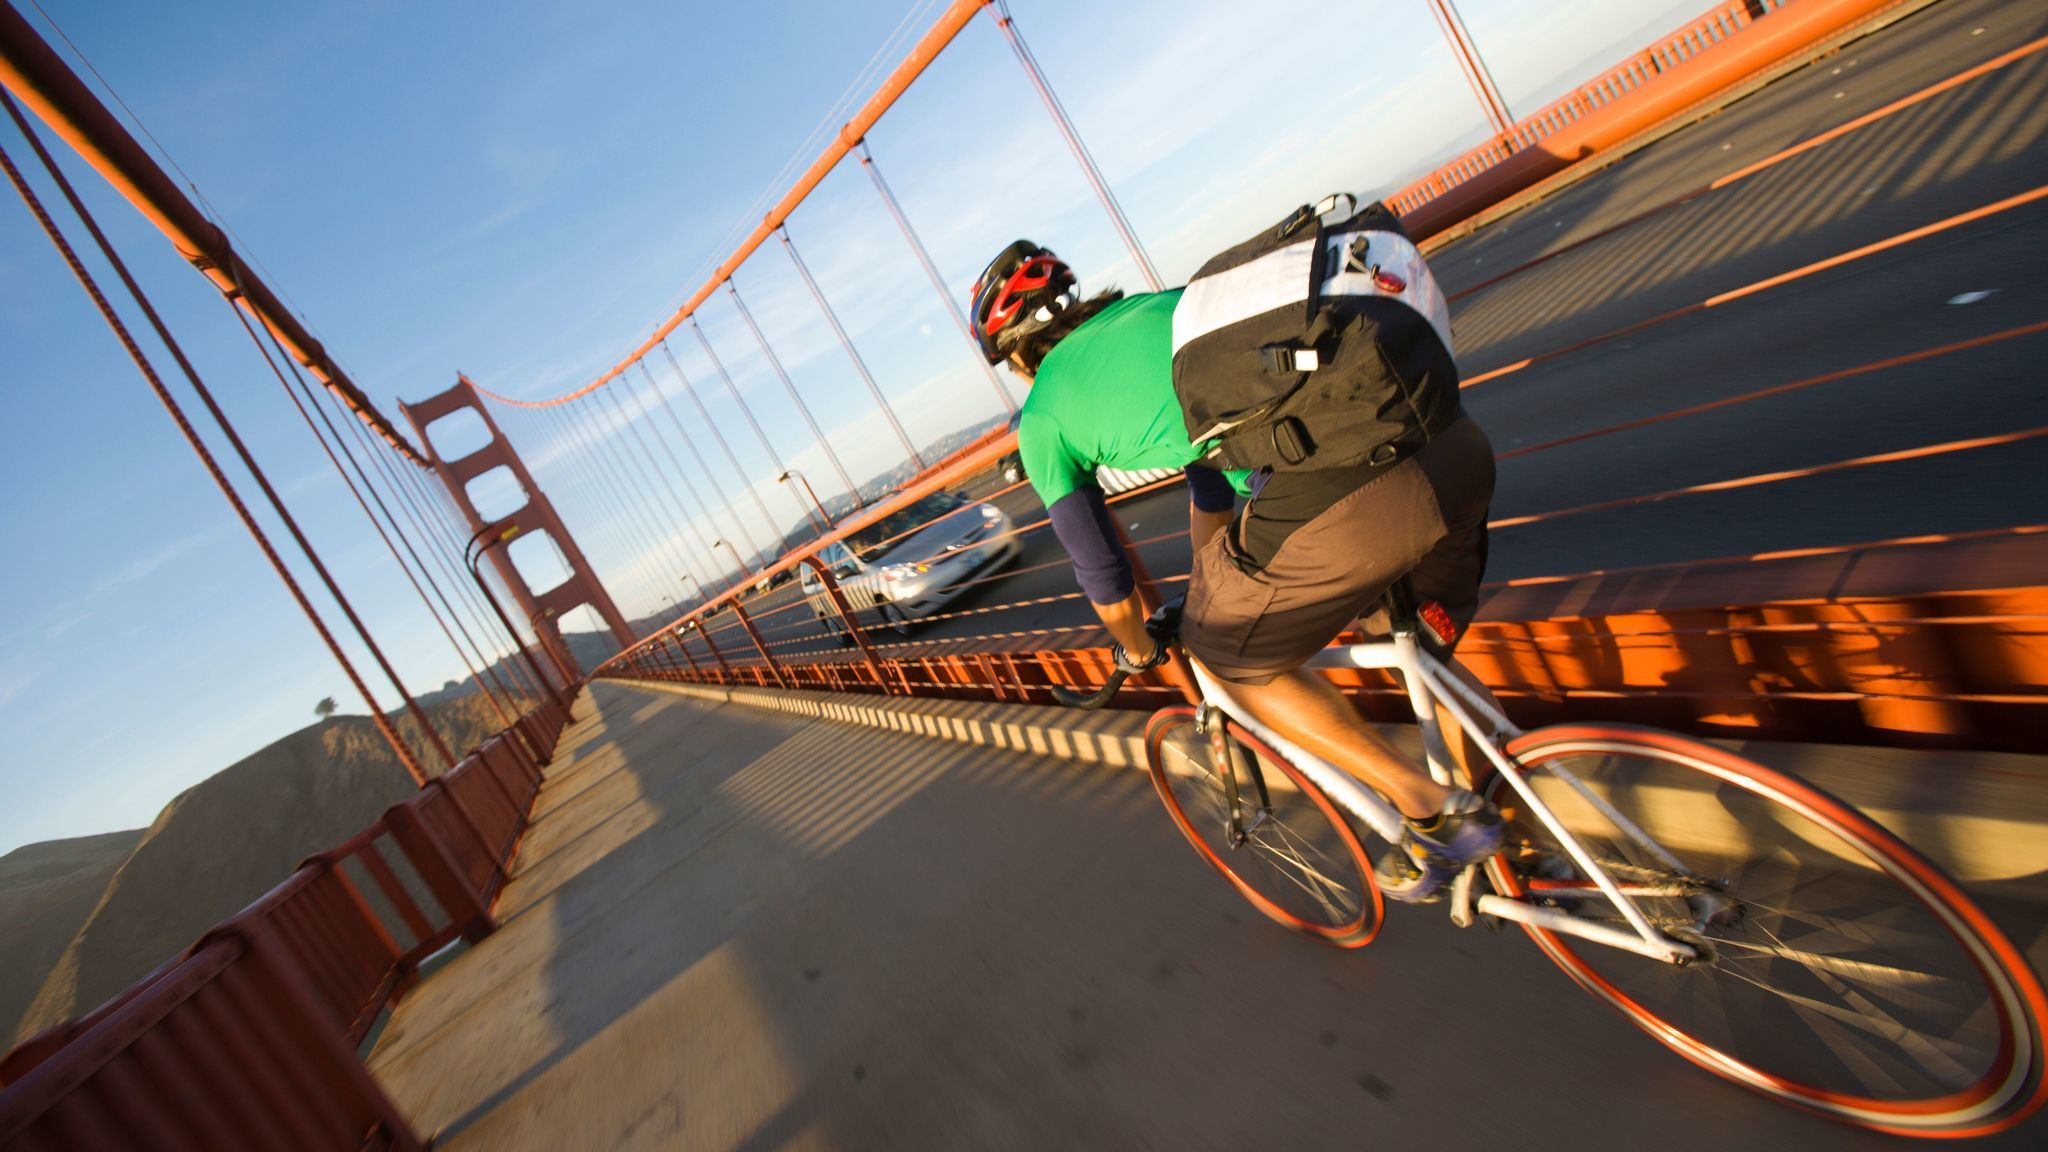 A solo cyclist crossing the Golden Gate Bridge at sunset on the commute home to the Marin near San Francisco, California.